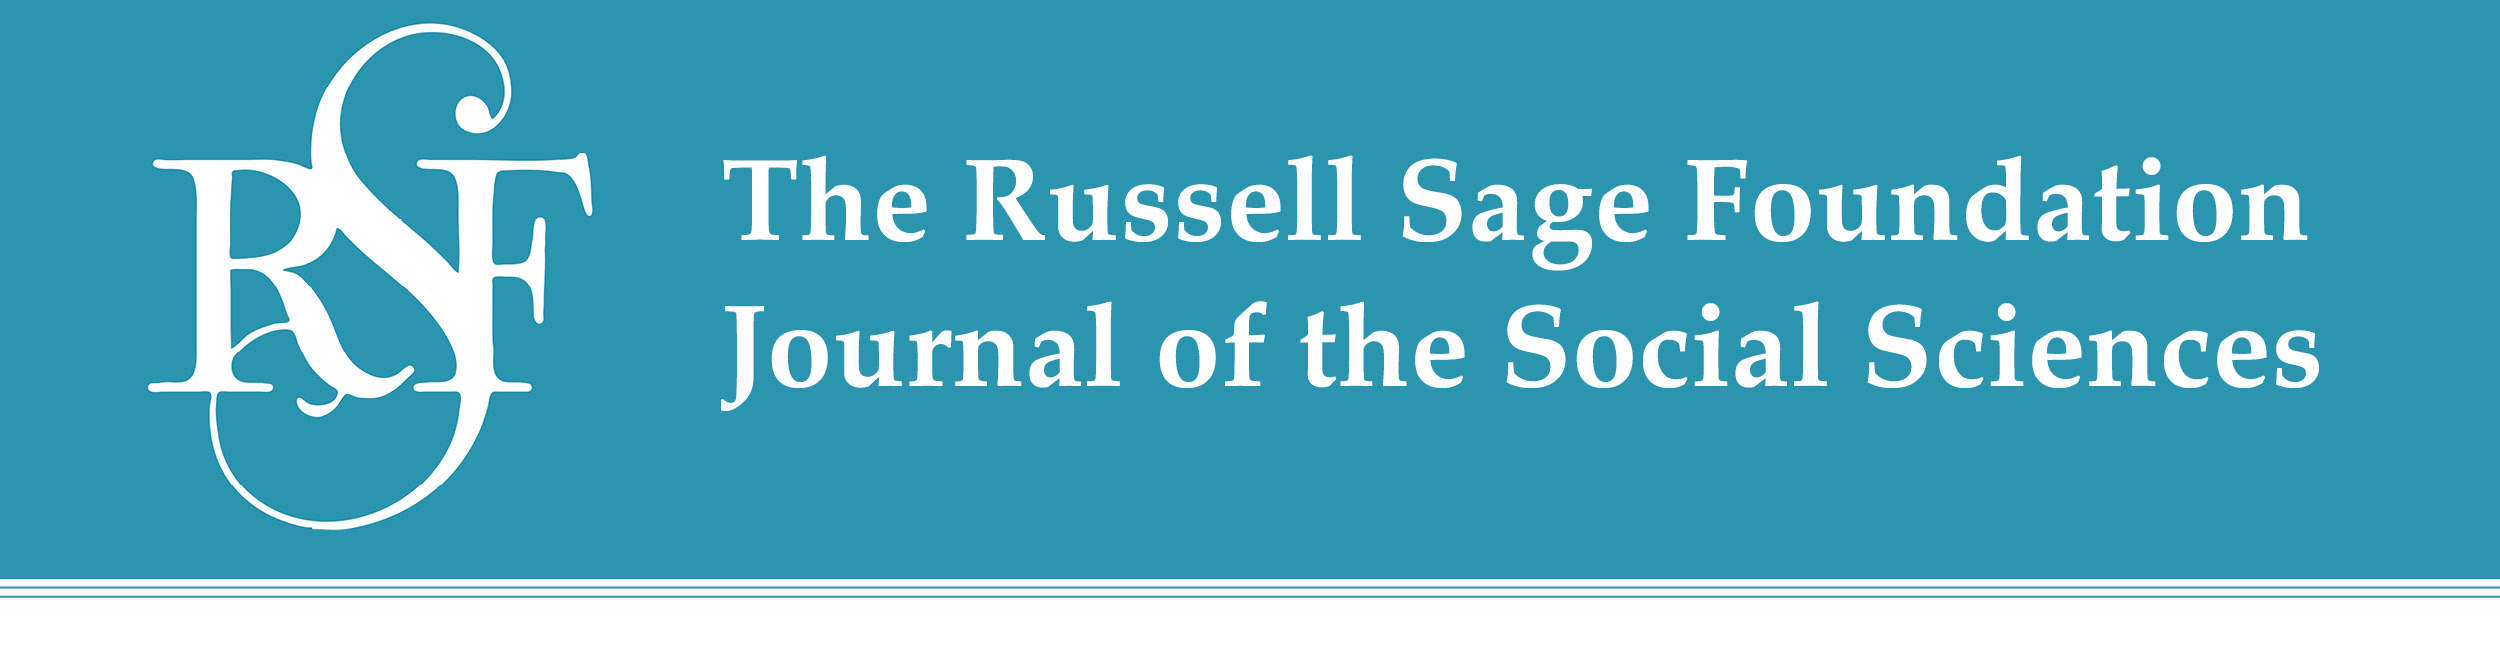 RSF Journal